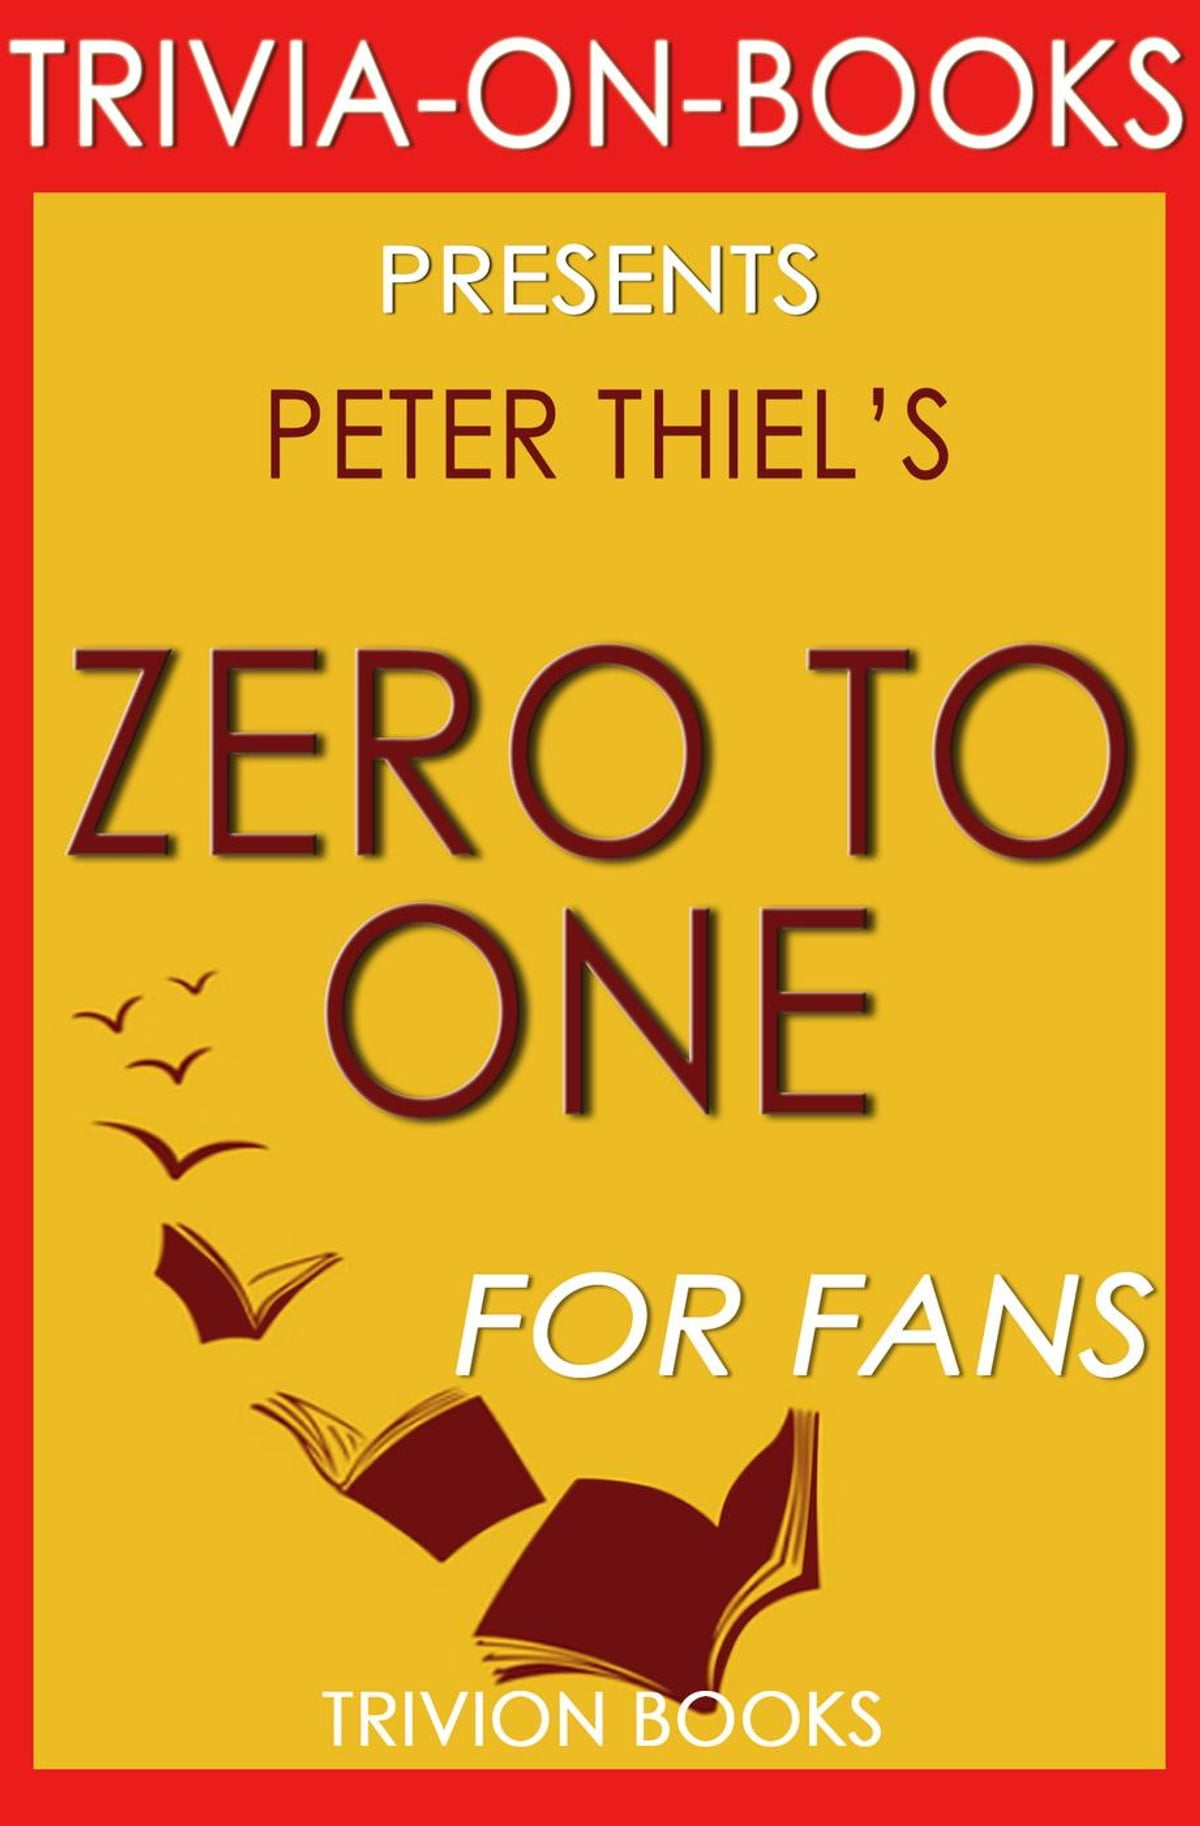 Zero to One: Notes on Startups, or How to Build the Future by Peter Thiel  (Trivia-On-Books) eBook by Trivion Books - 9781533774262 | Rakuten Kobo